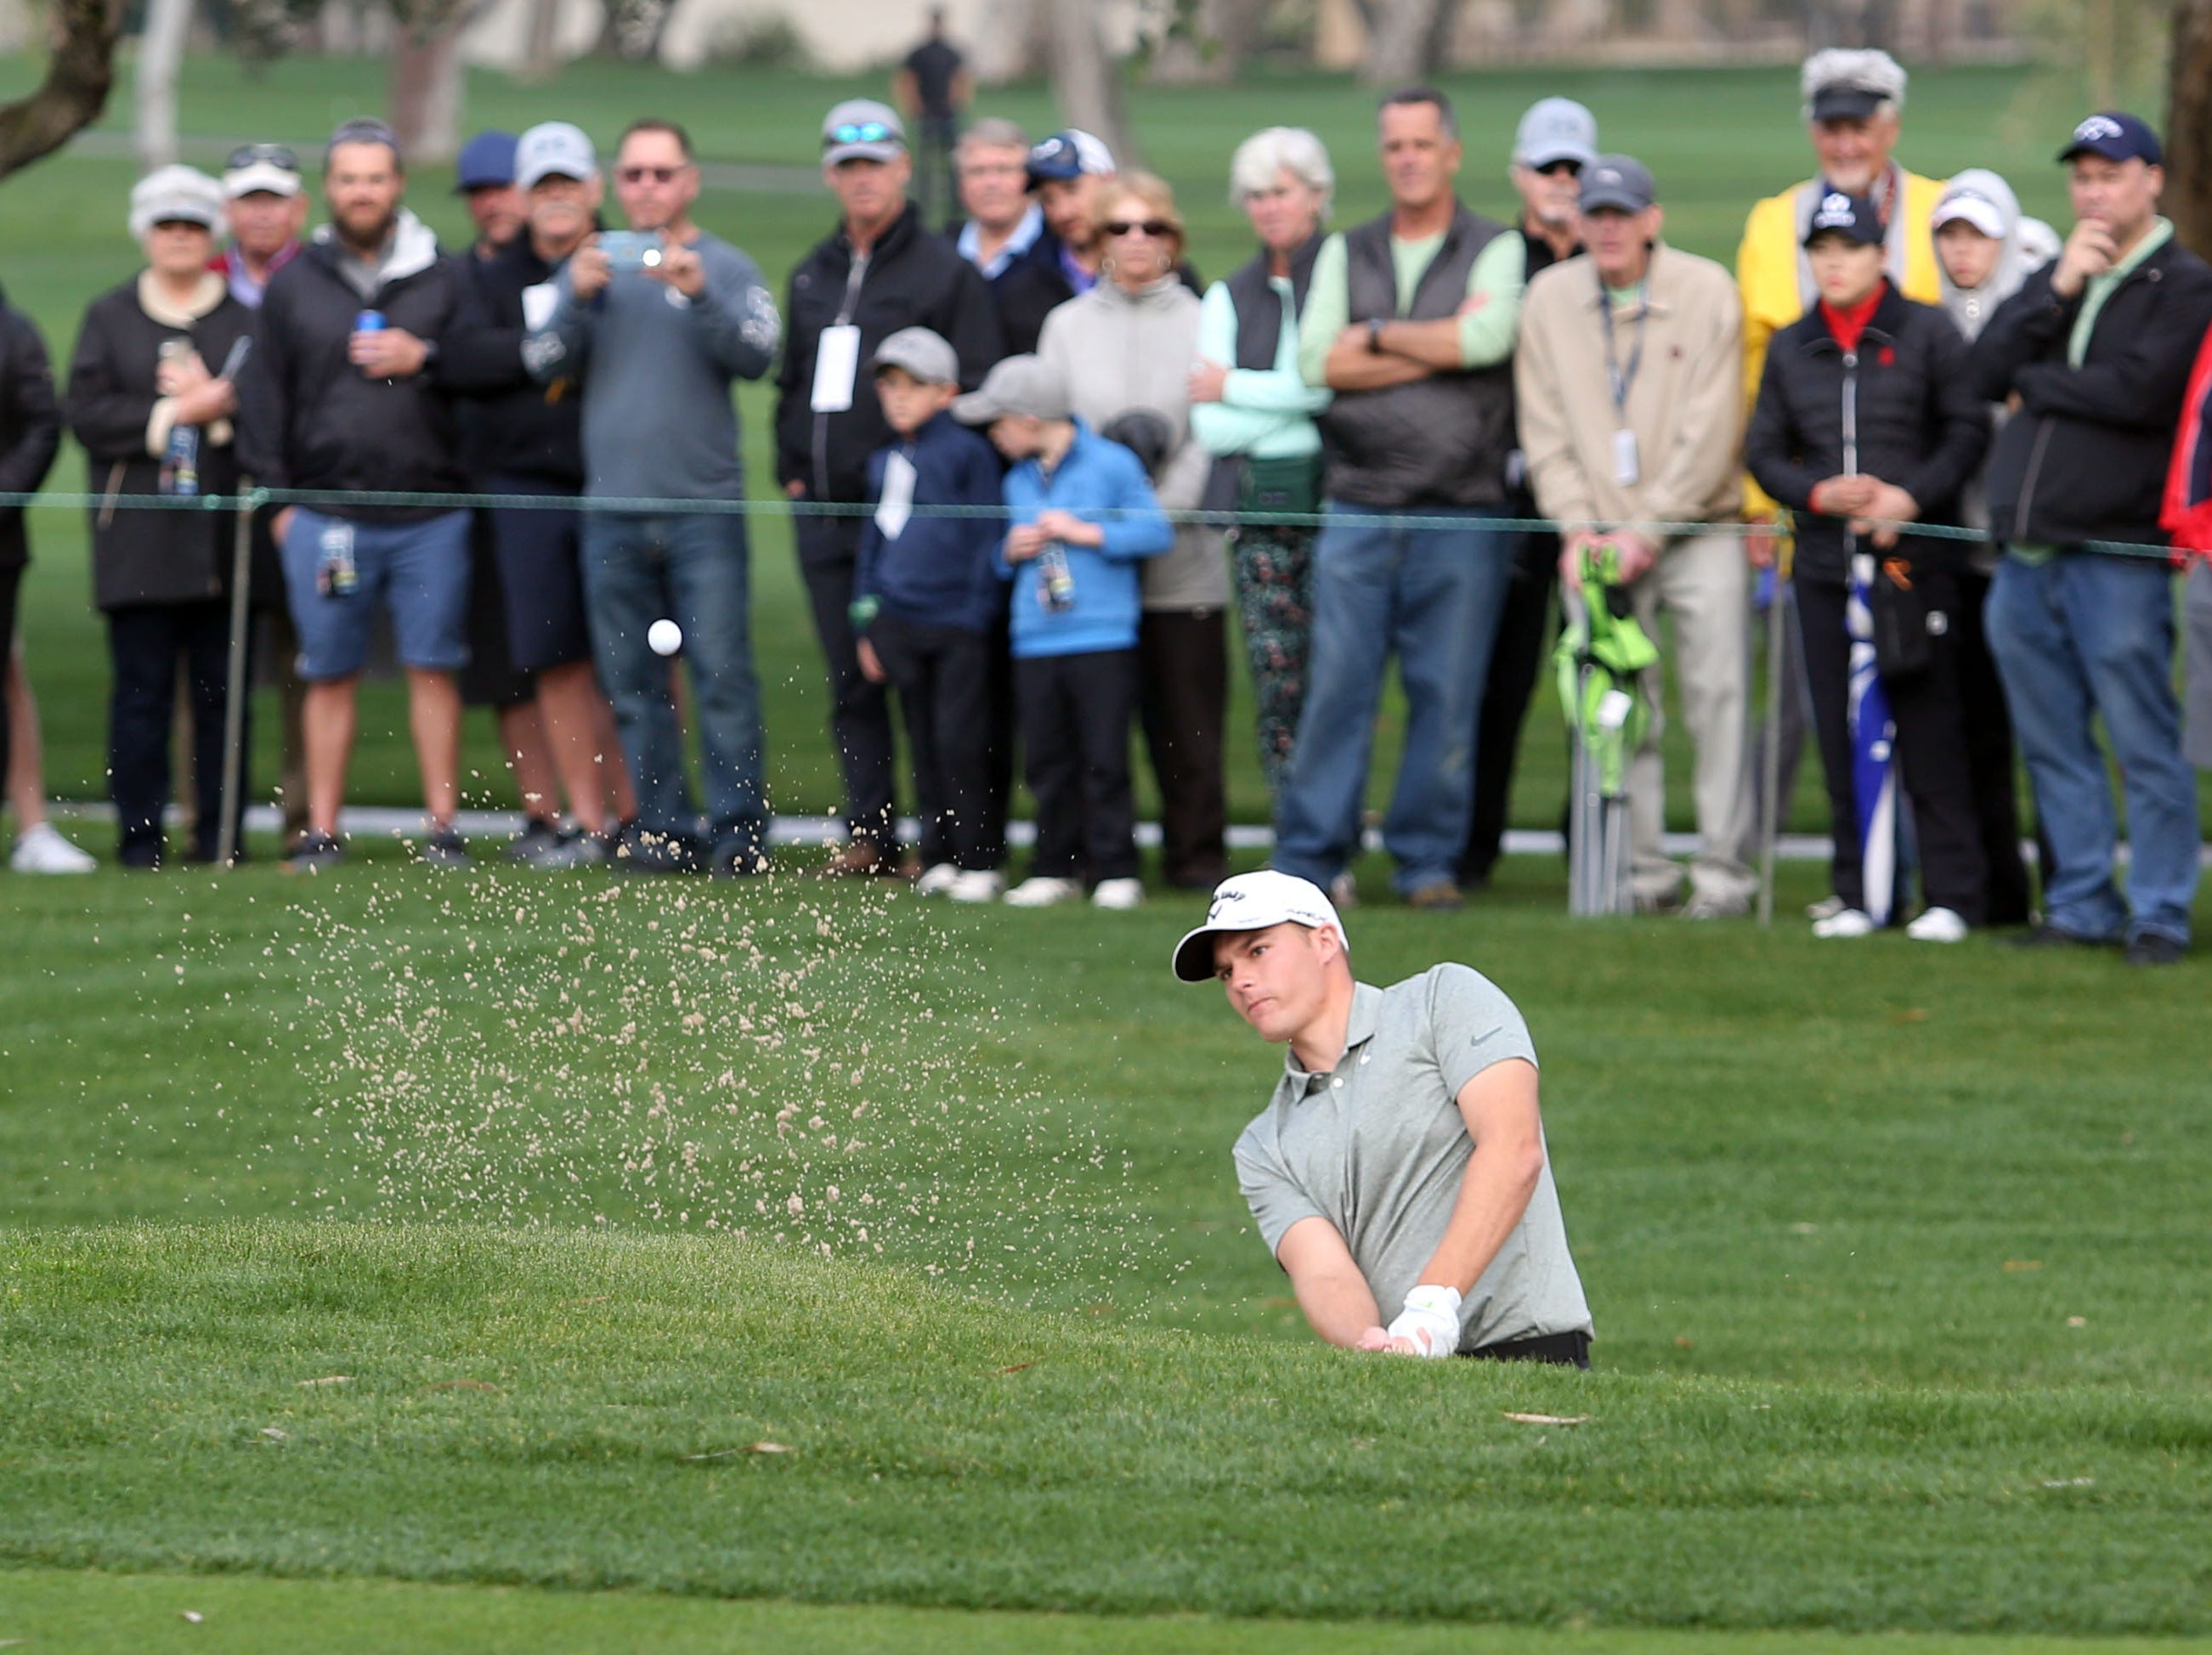 Aaron Wise in a bunker at La Quinta County Club during the 1st round of the Desert Classic on Thursday, January 17, 2019.